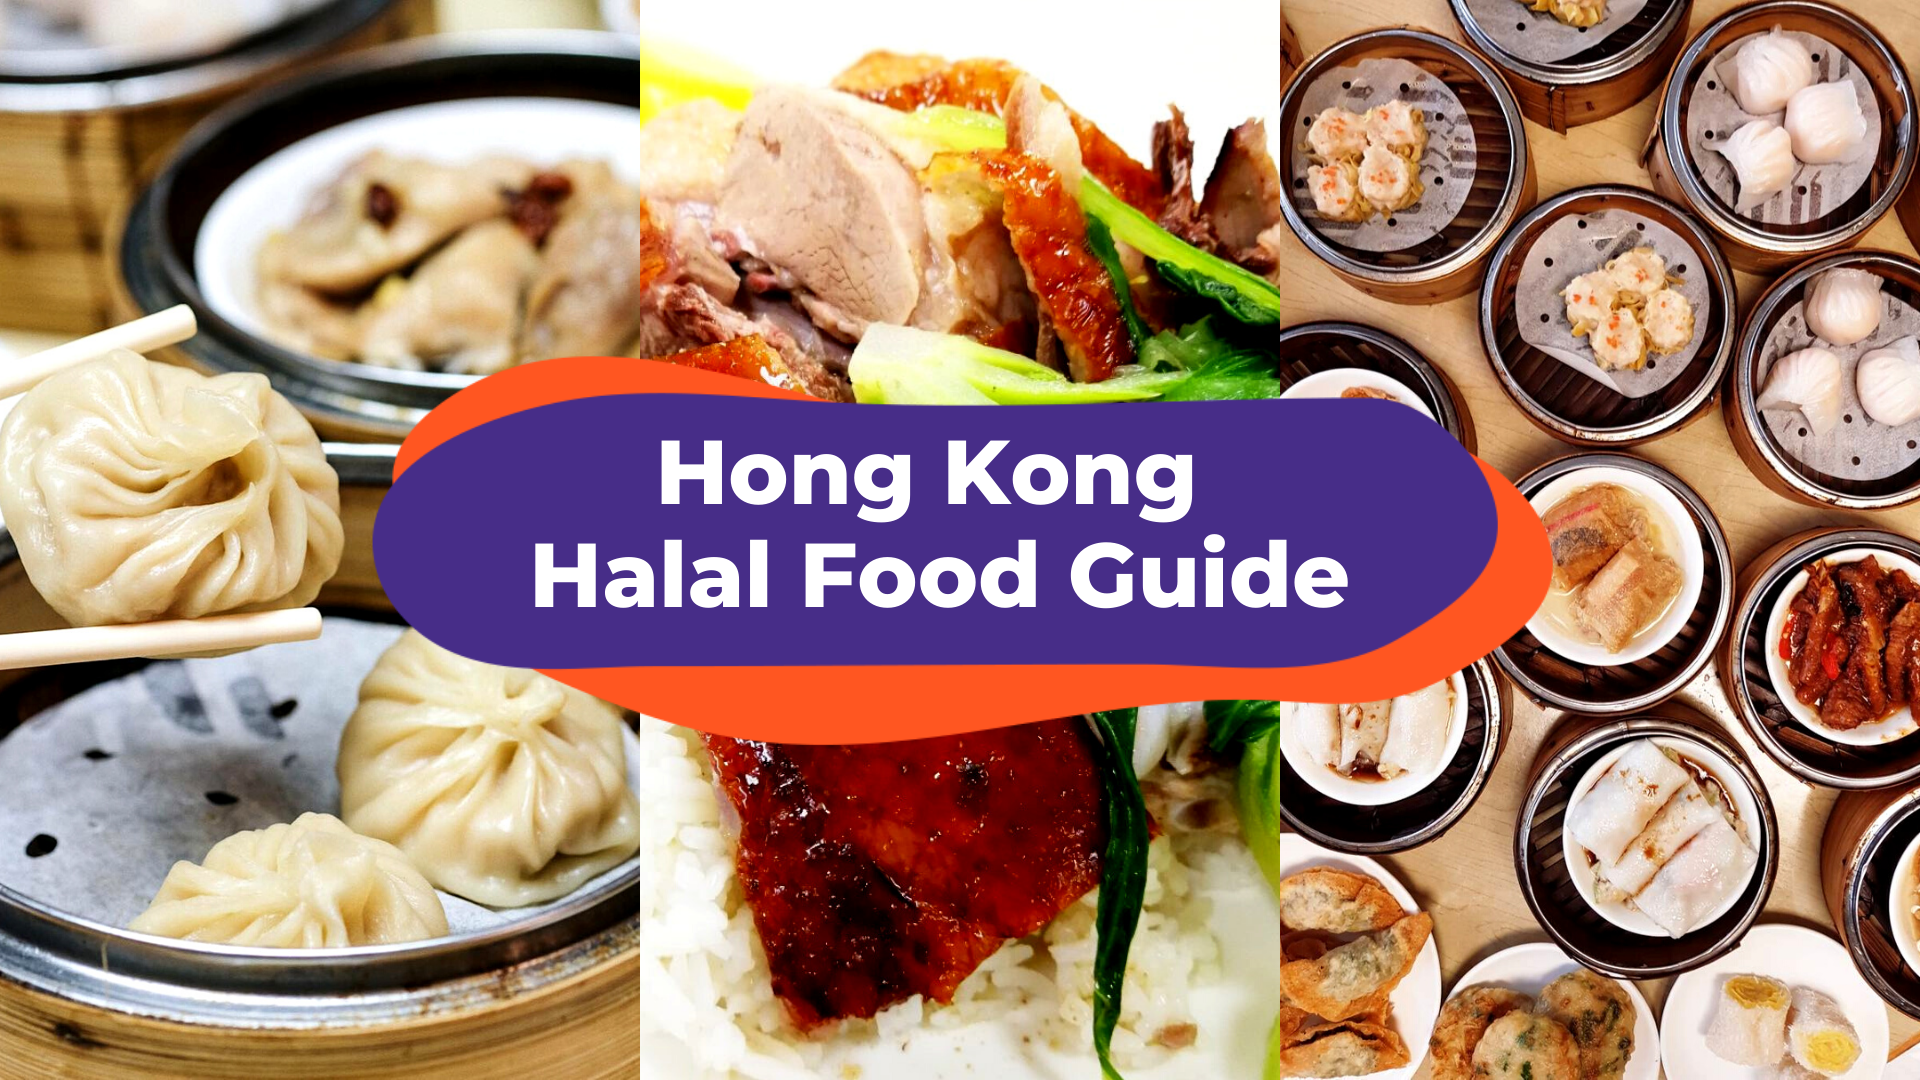 9 Best Halal Restaurants In Hong Kong - Best Halal Dim Sum, Duck Rice, And Other Useful Tips For Muslims Travellers